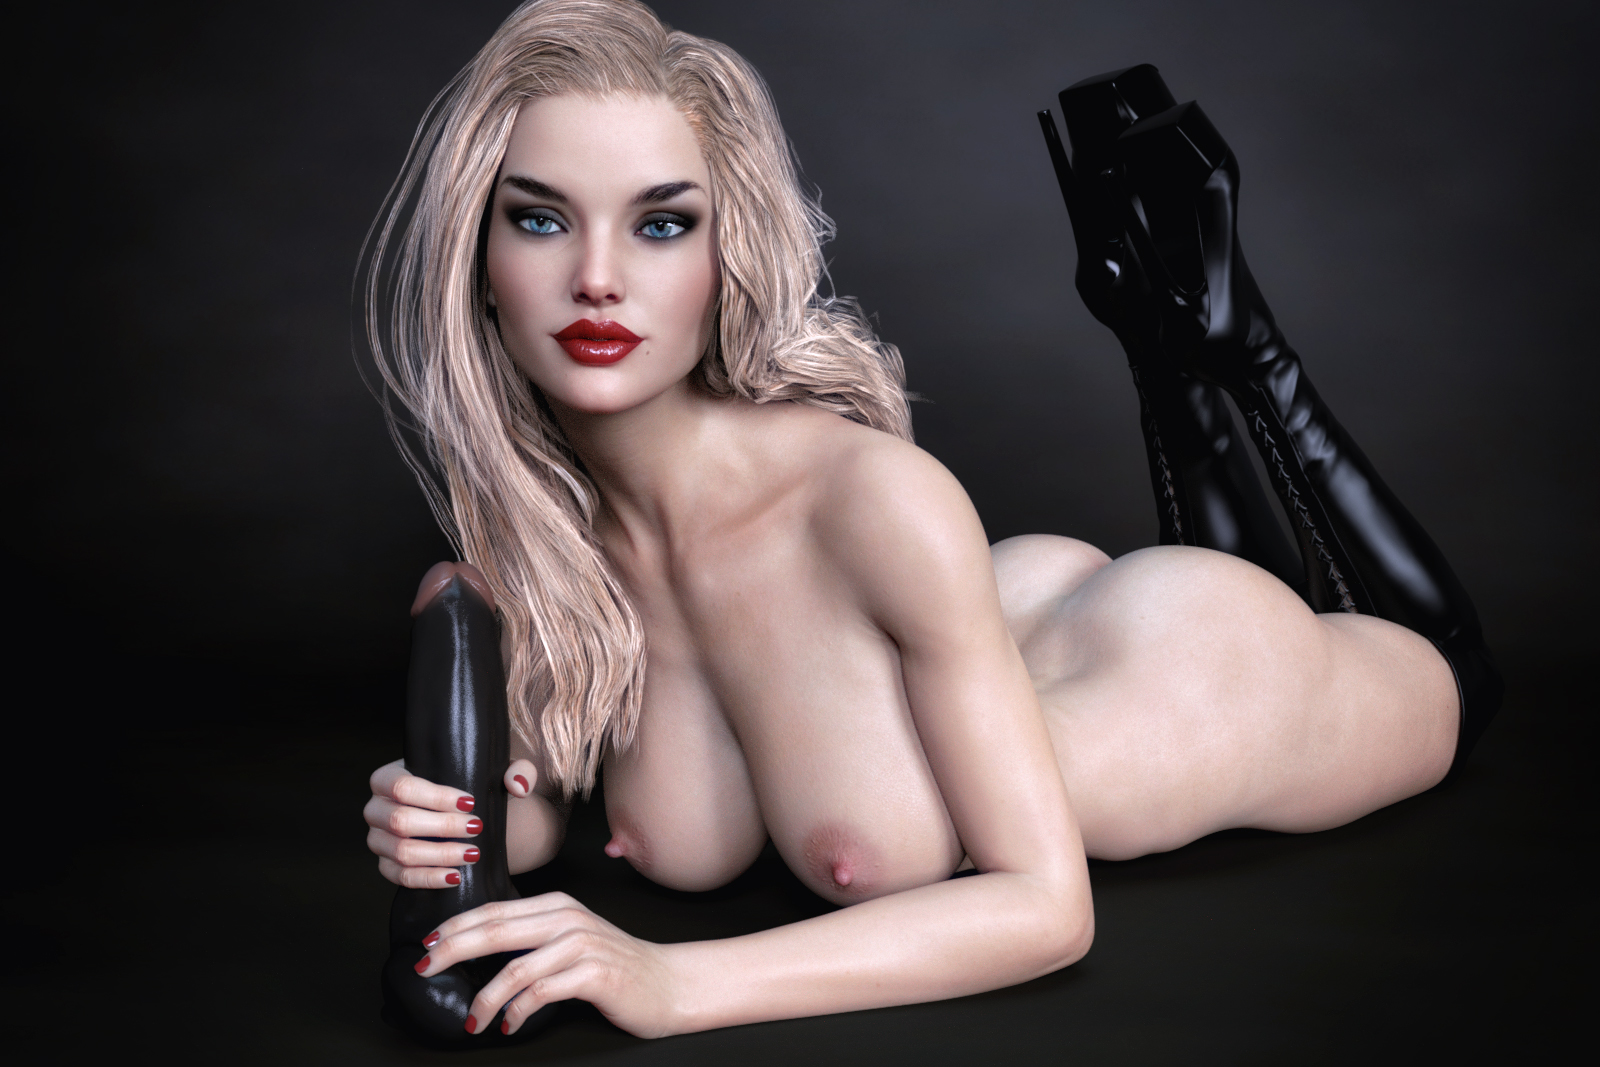 Sensual Shadows – Toying with the Fantasy